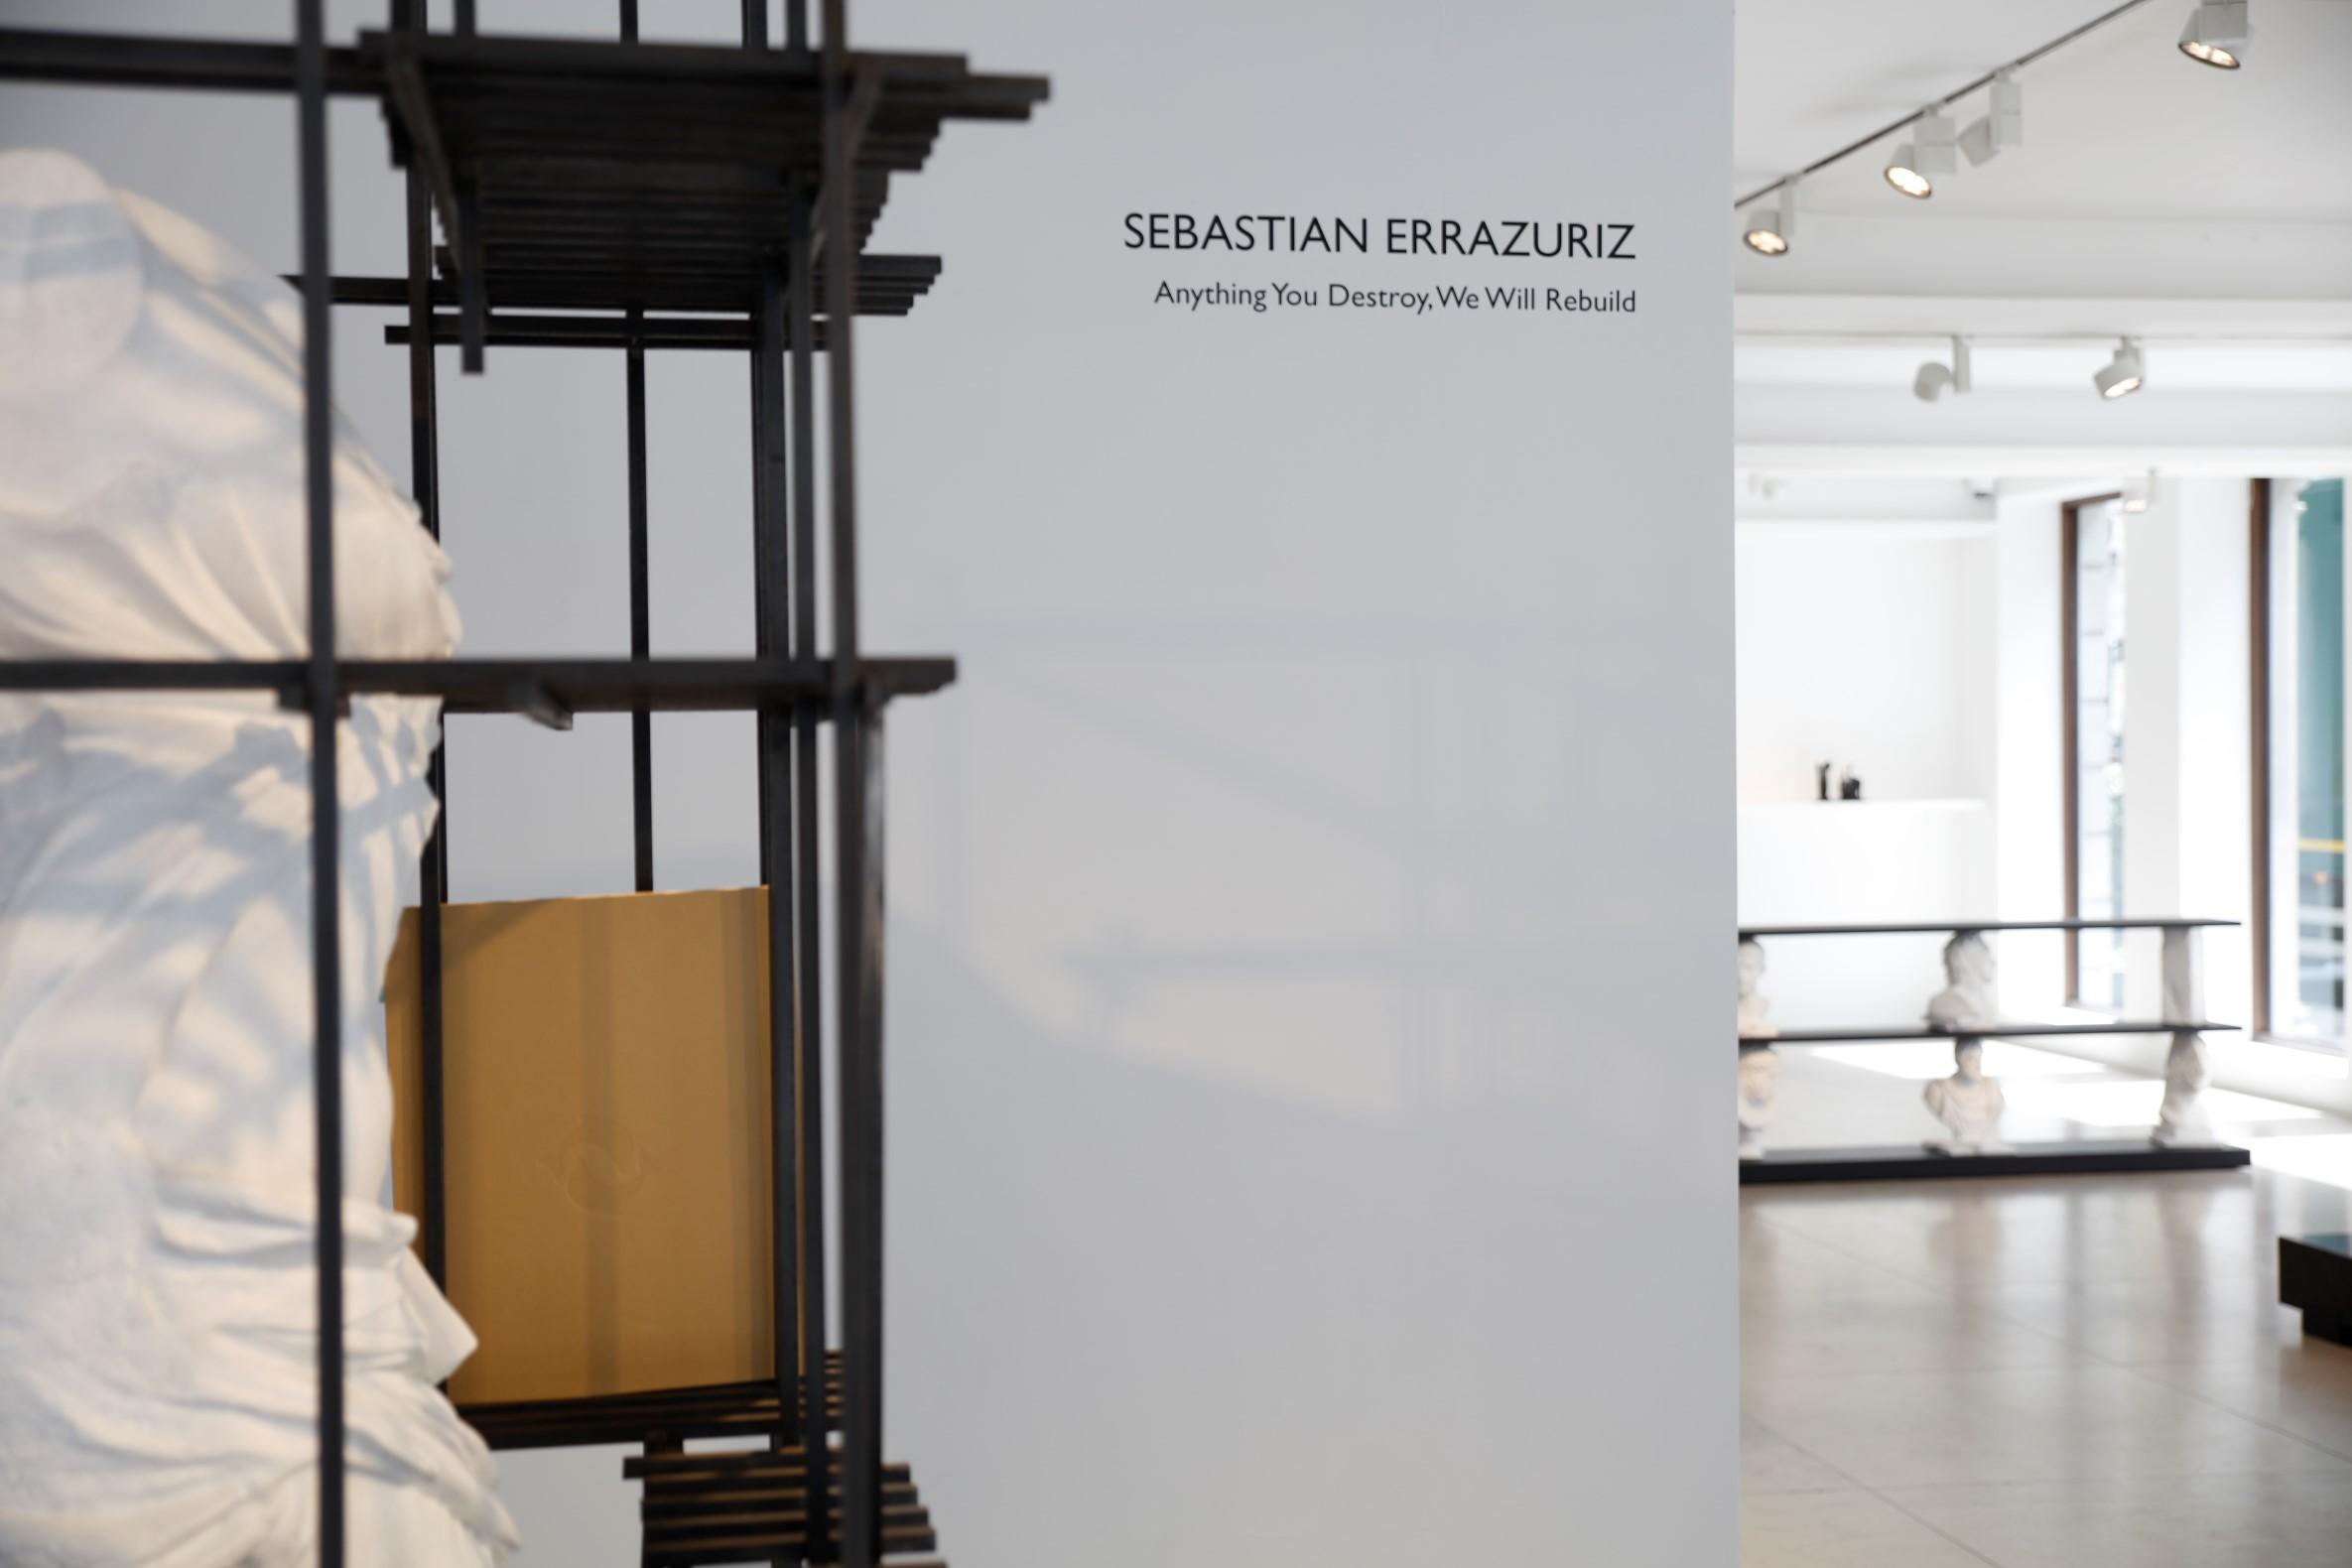 Installation Image, Sebastian ErraZuriz 'Anything You Destroy, We Will Rebuild' at David Gill Gallery